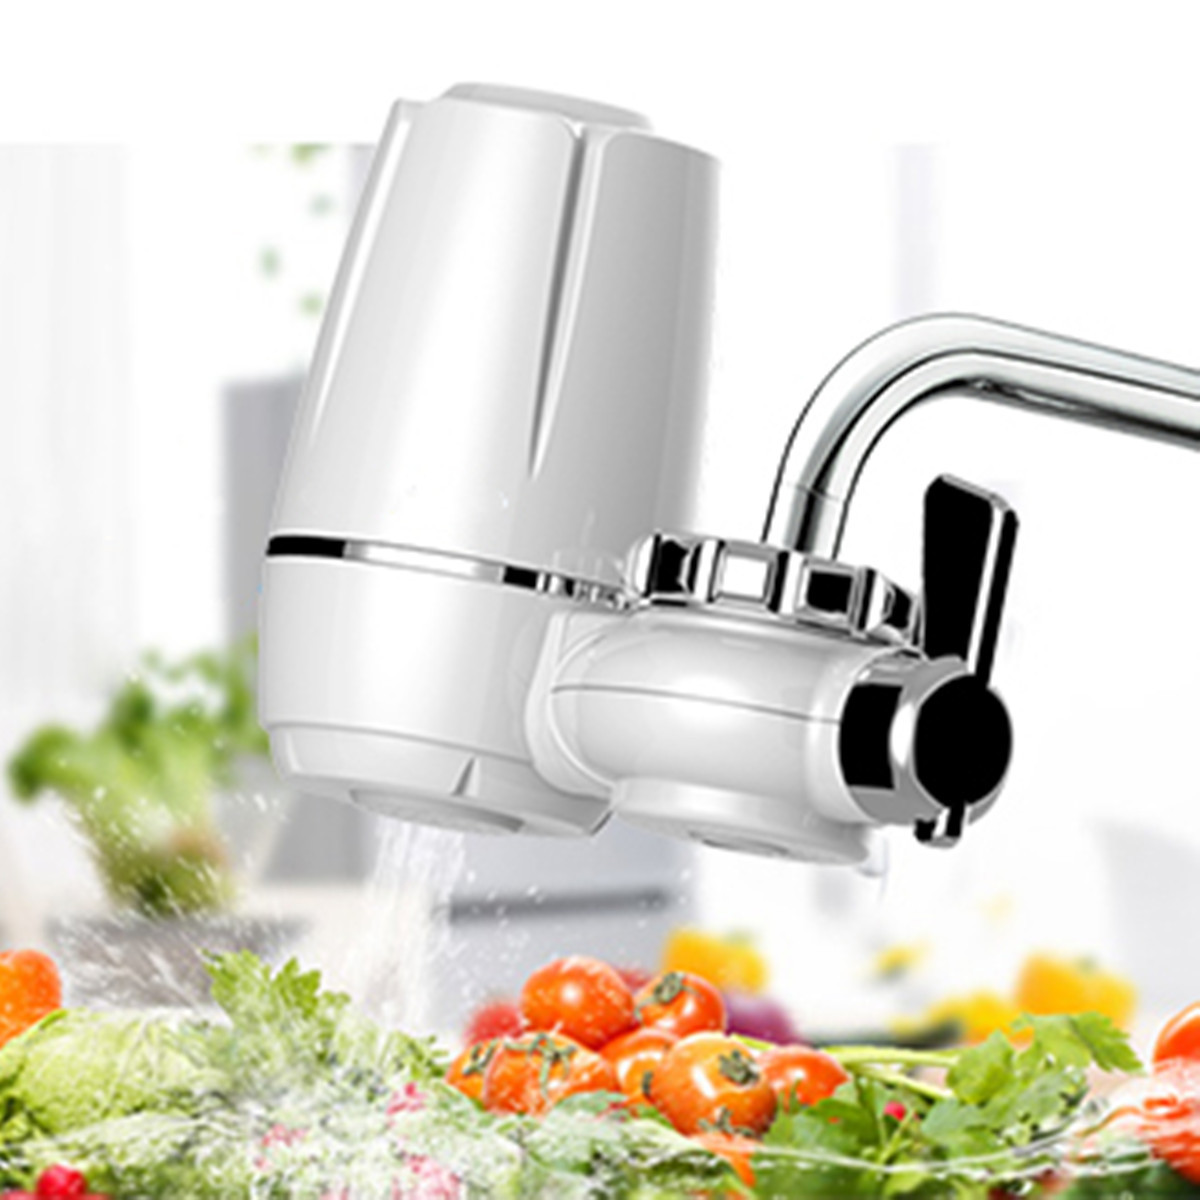 Home Kitchen Tap Faucets Water Filter Mount Water Purifier Strainer Cleaner+ Washable Ceramic Cartridge